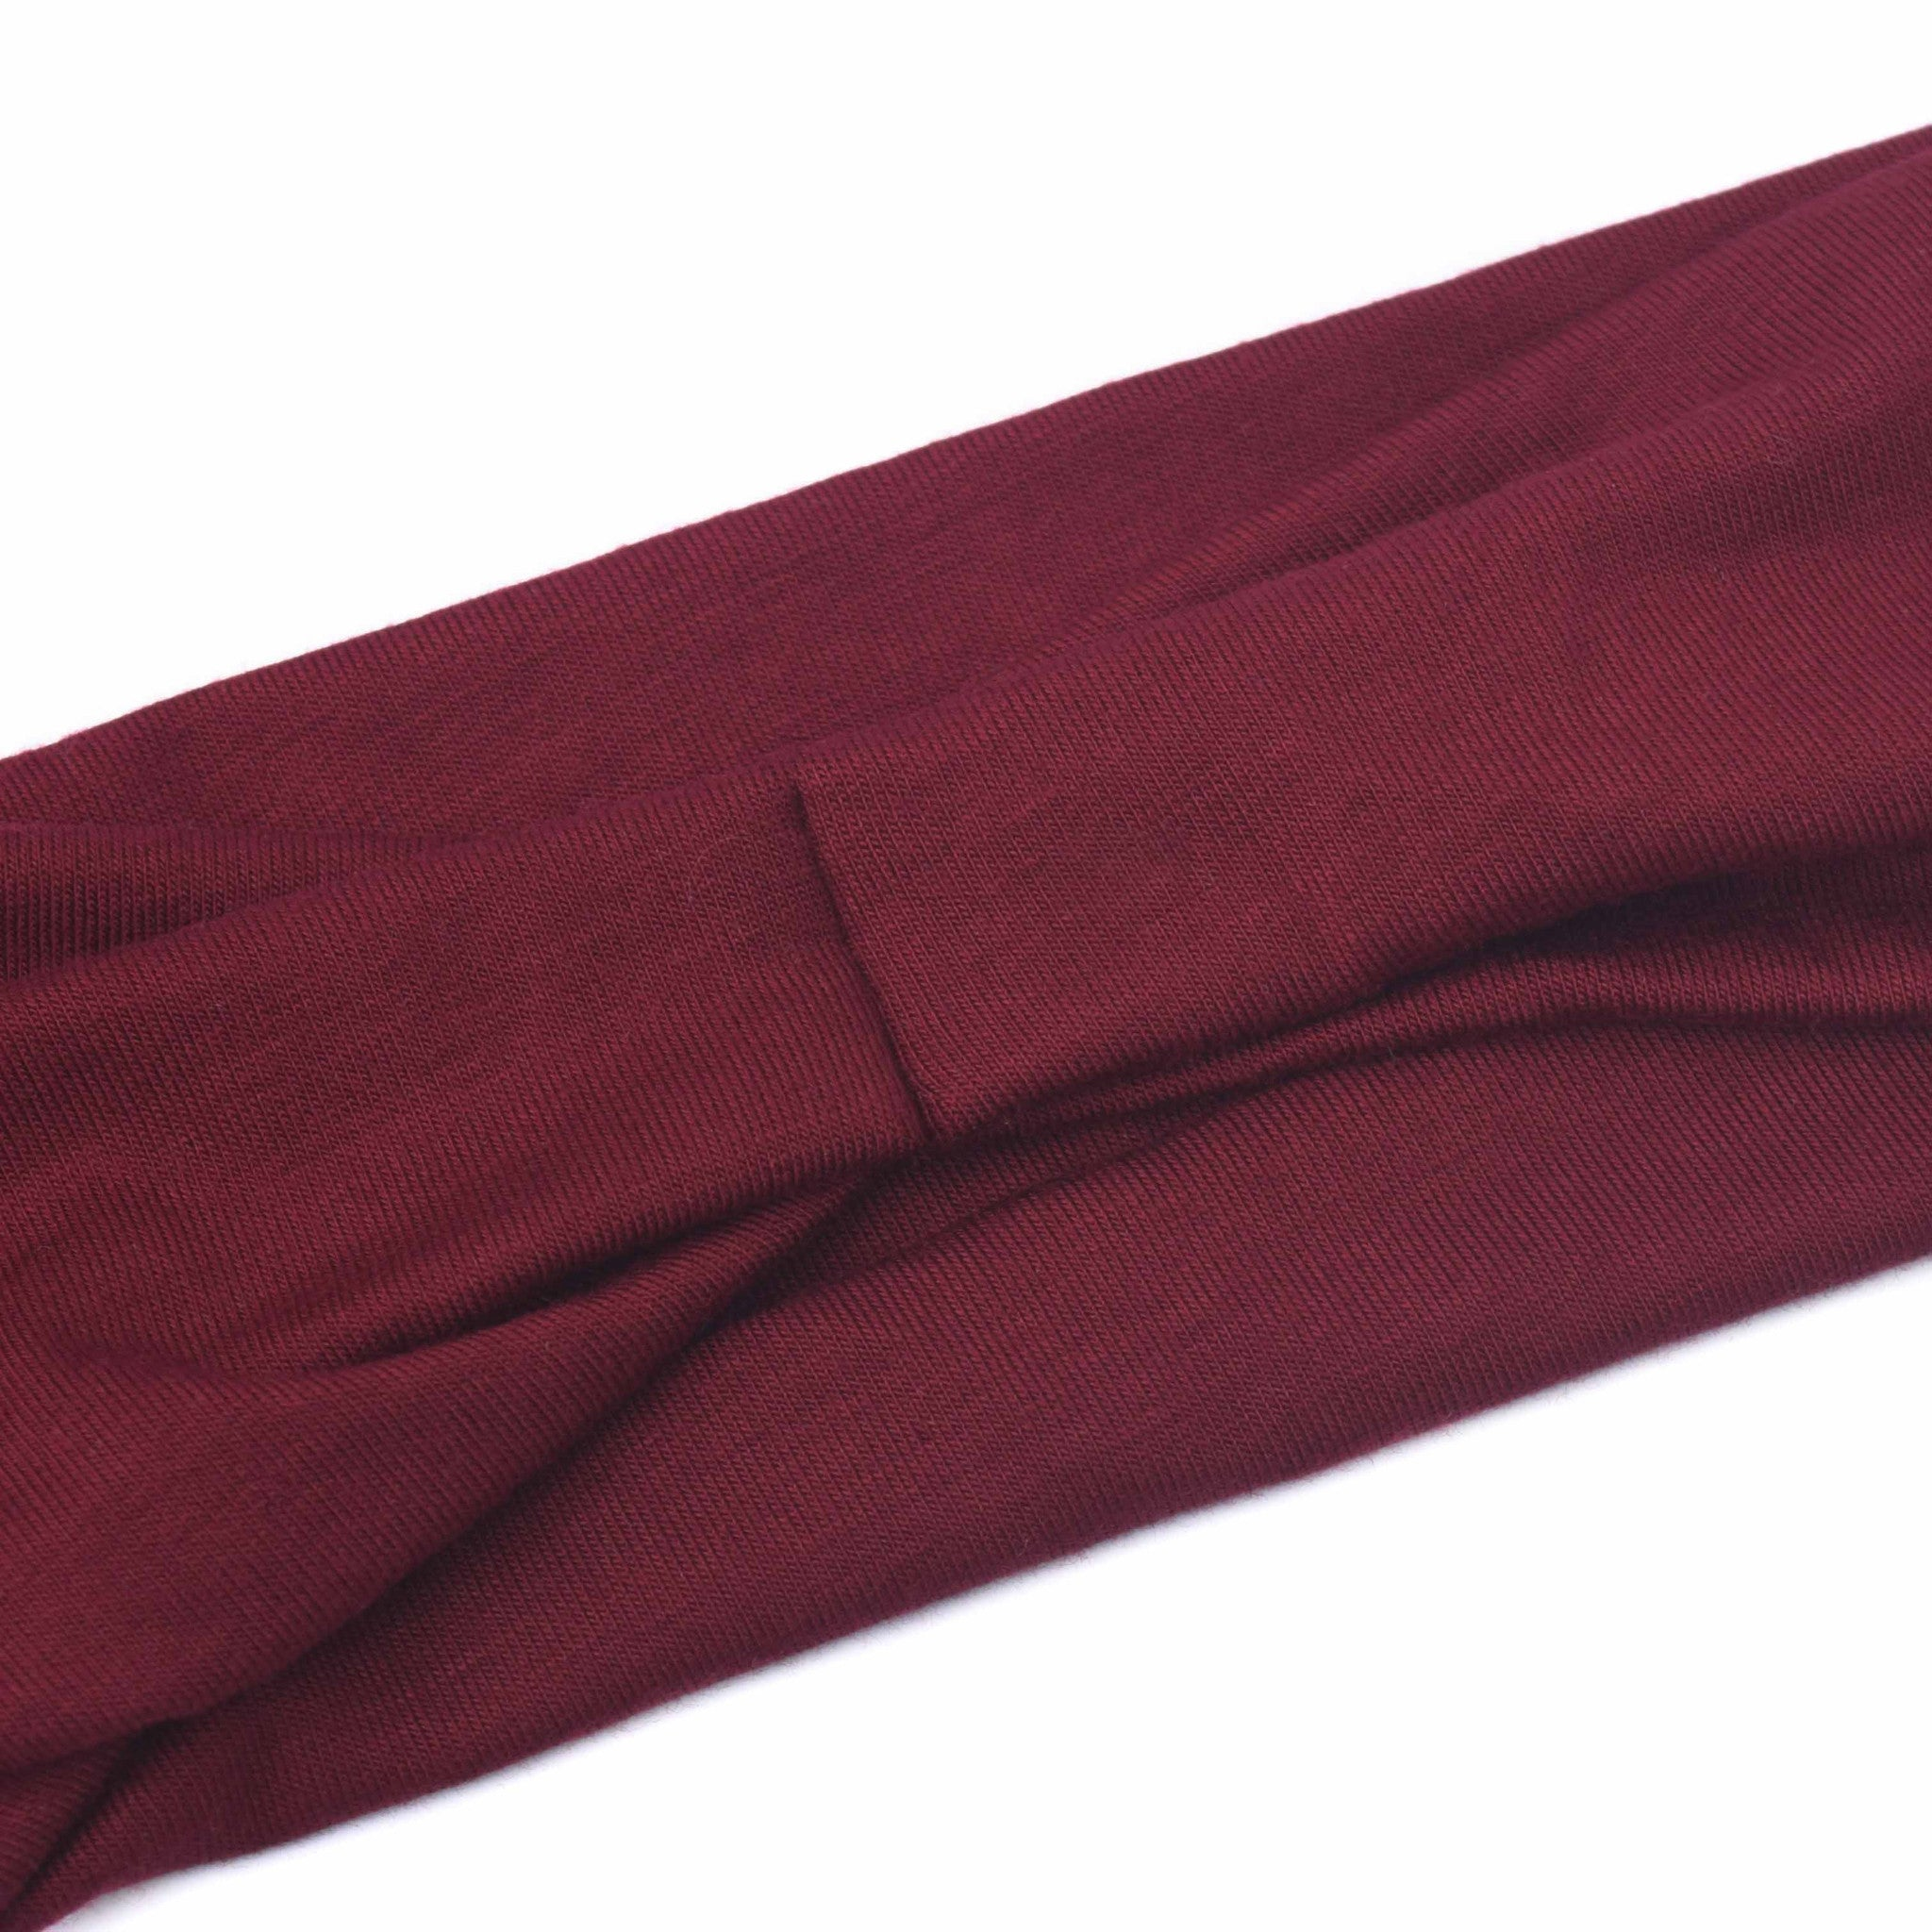 MAROON - Wide Headband